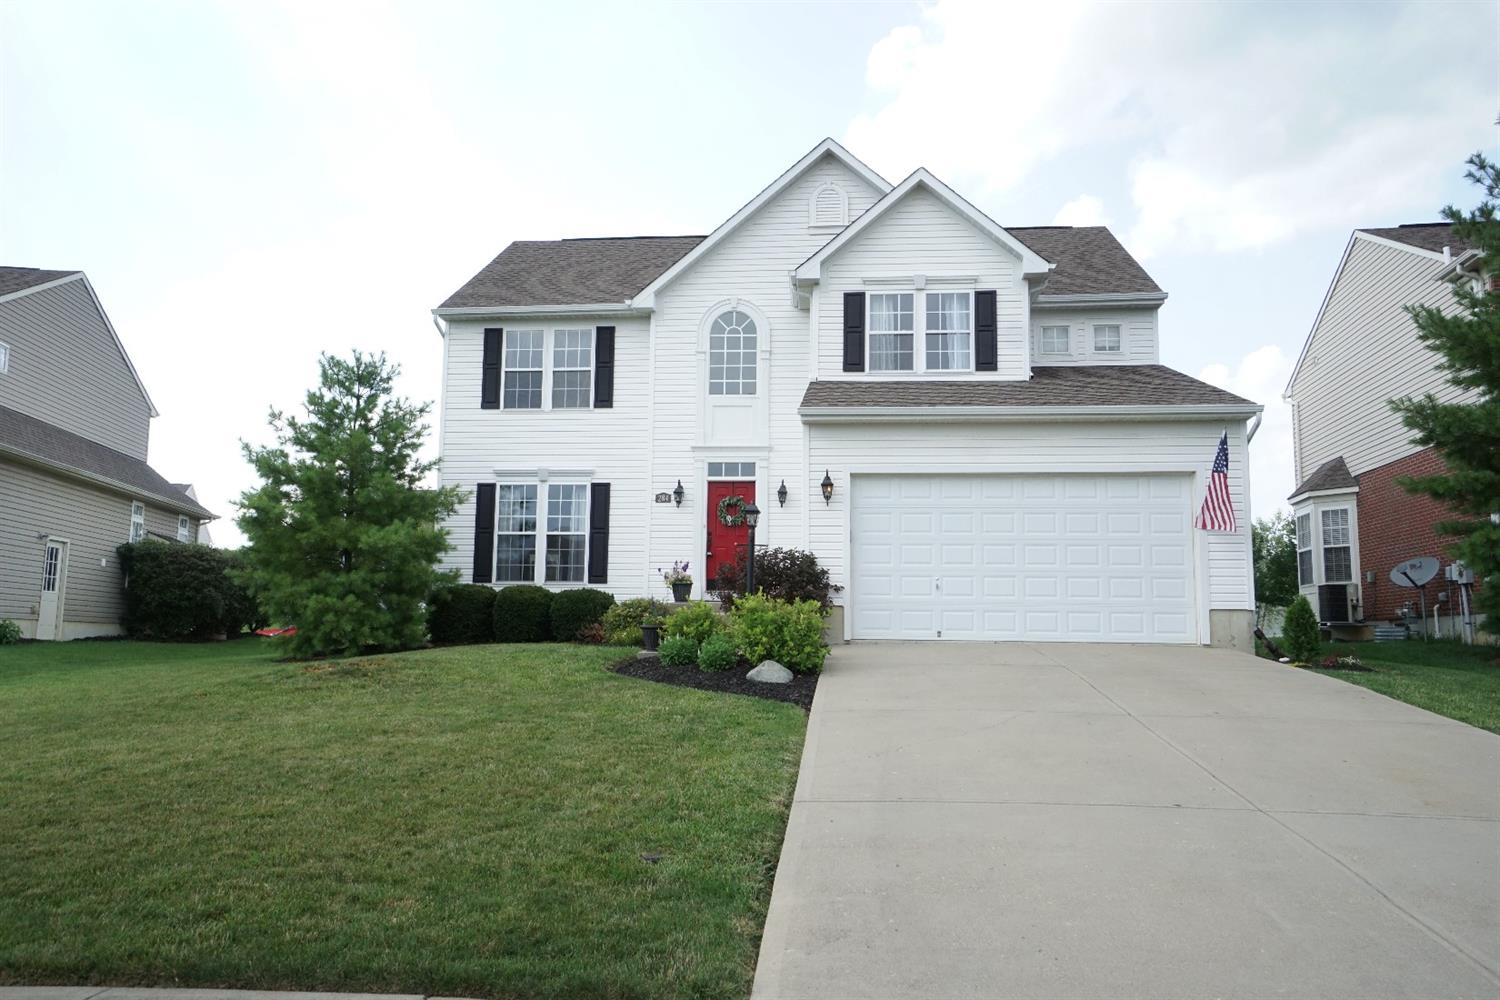 284 Leather Leaf Lane, Lebanon, OH 45036